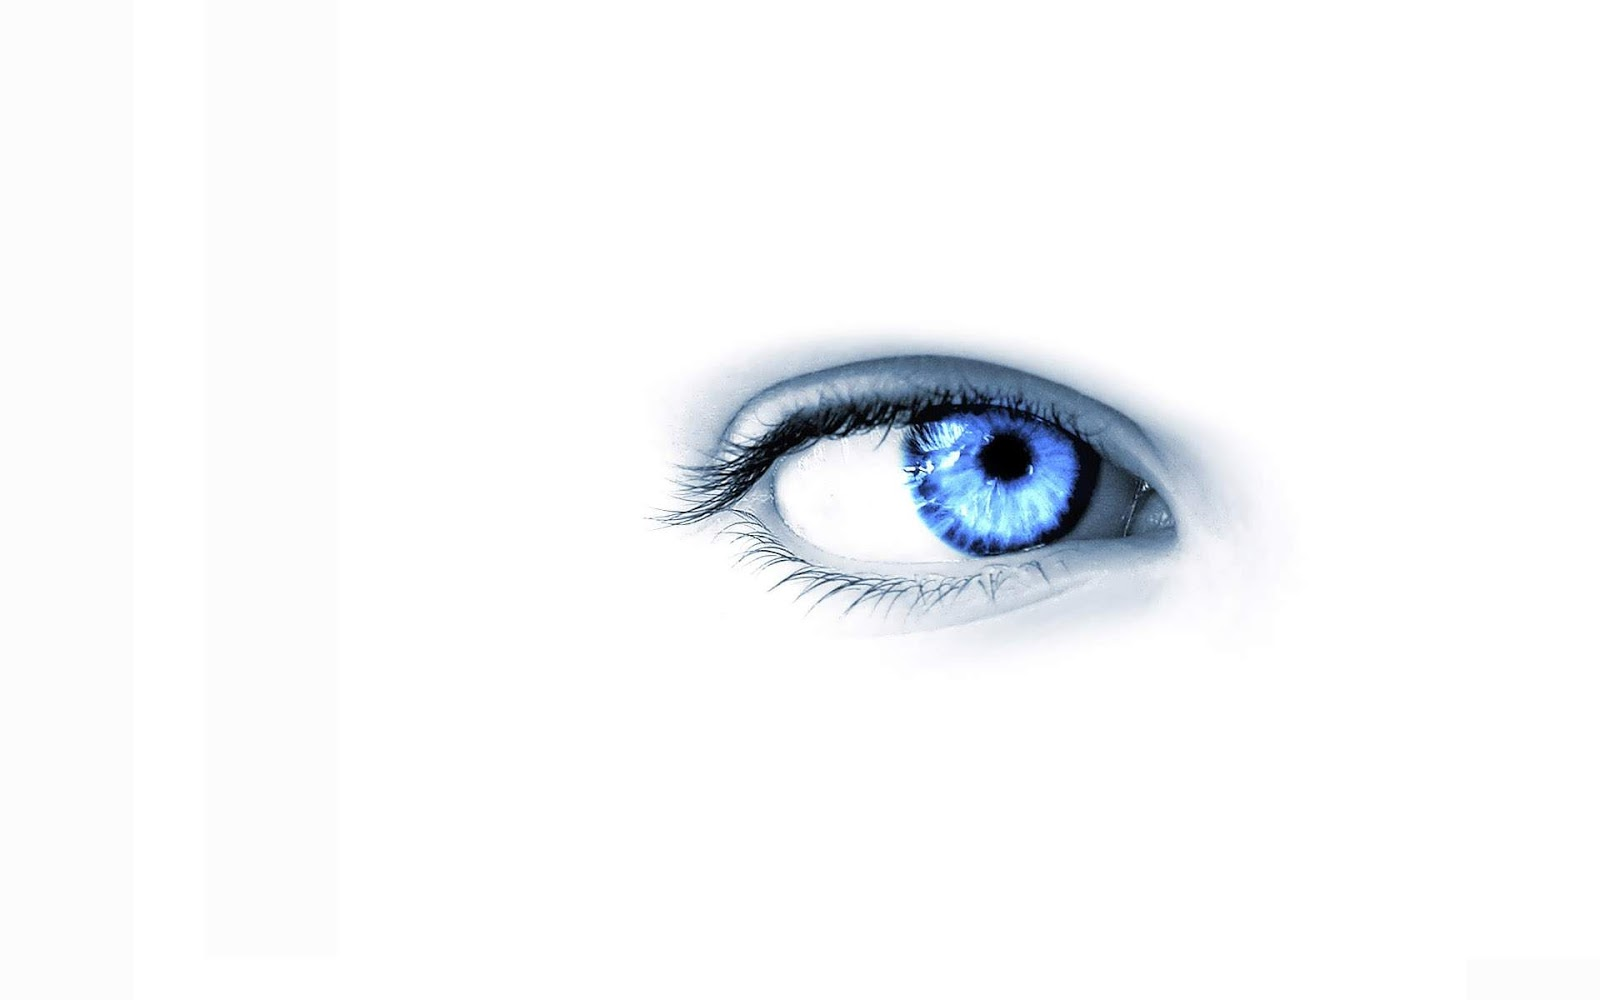 Black and white wallpapers blue eye on white background for Blue and white wallpaper